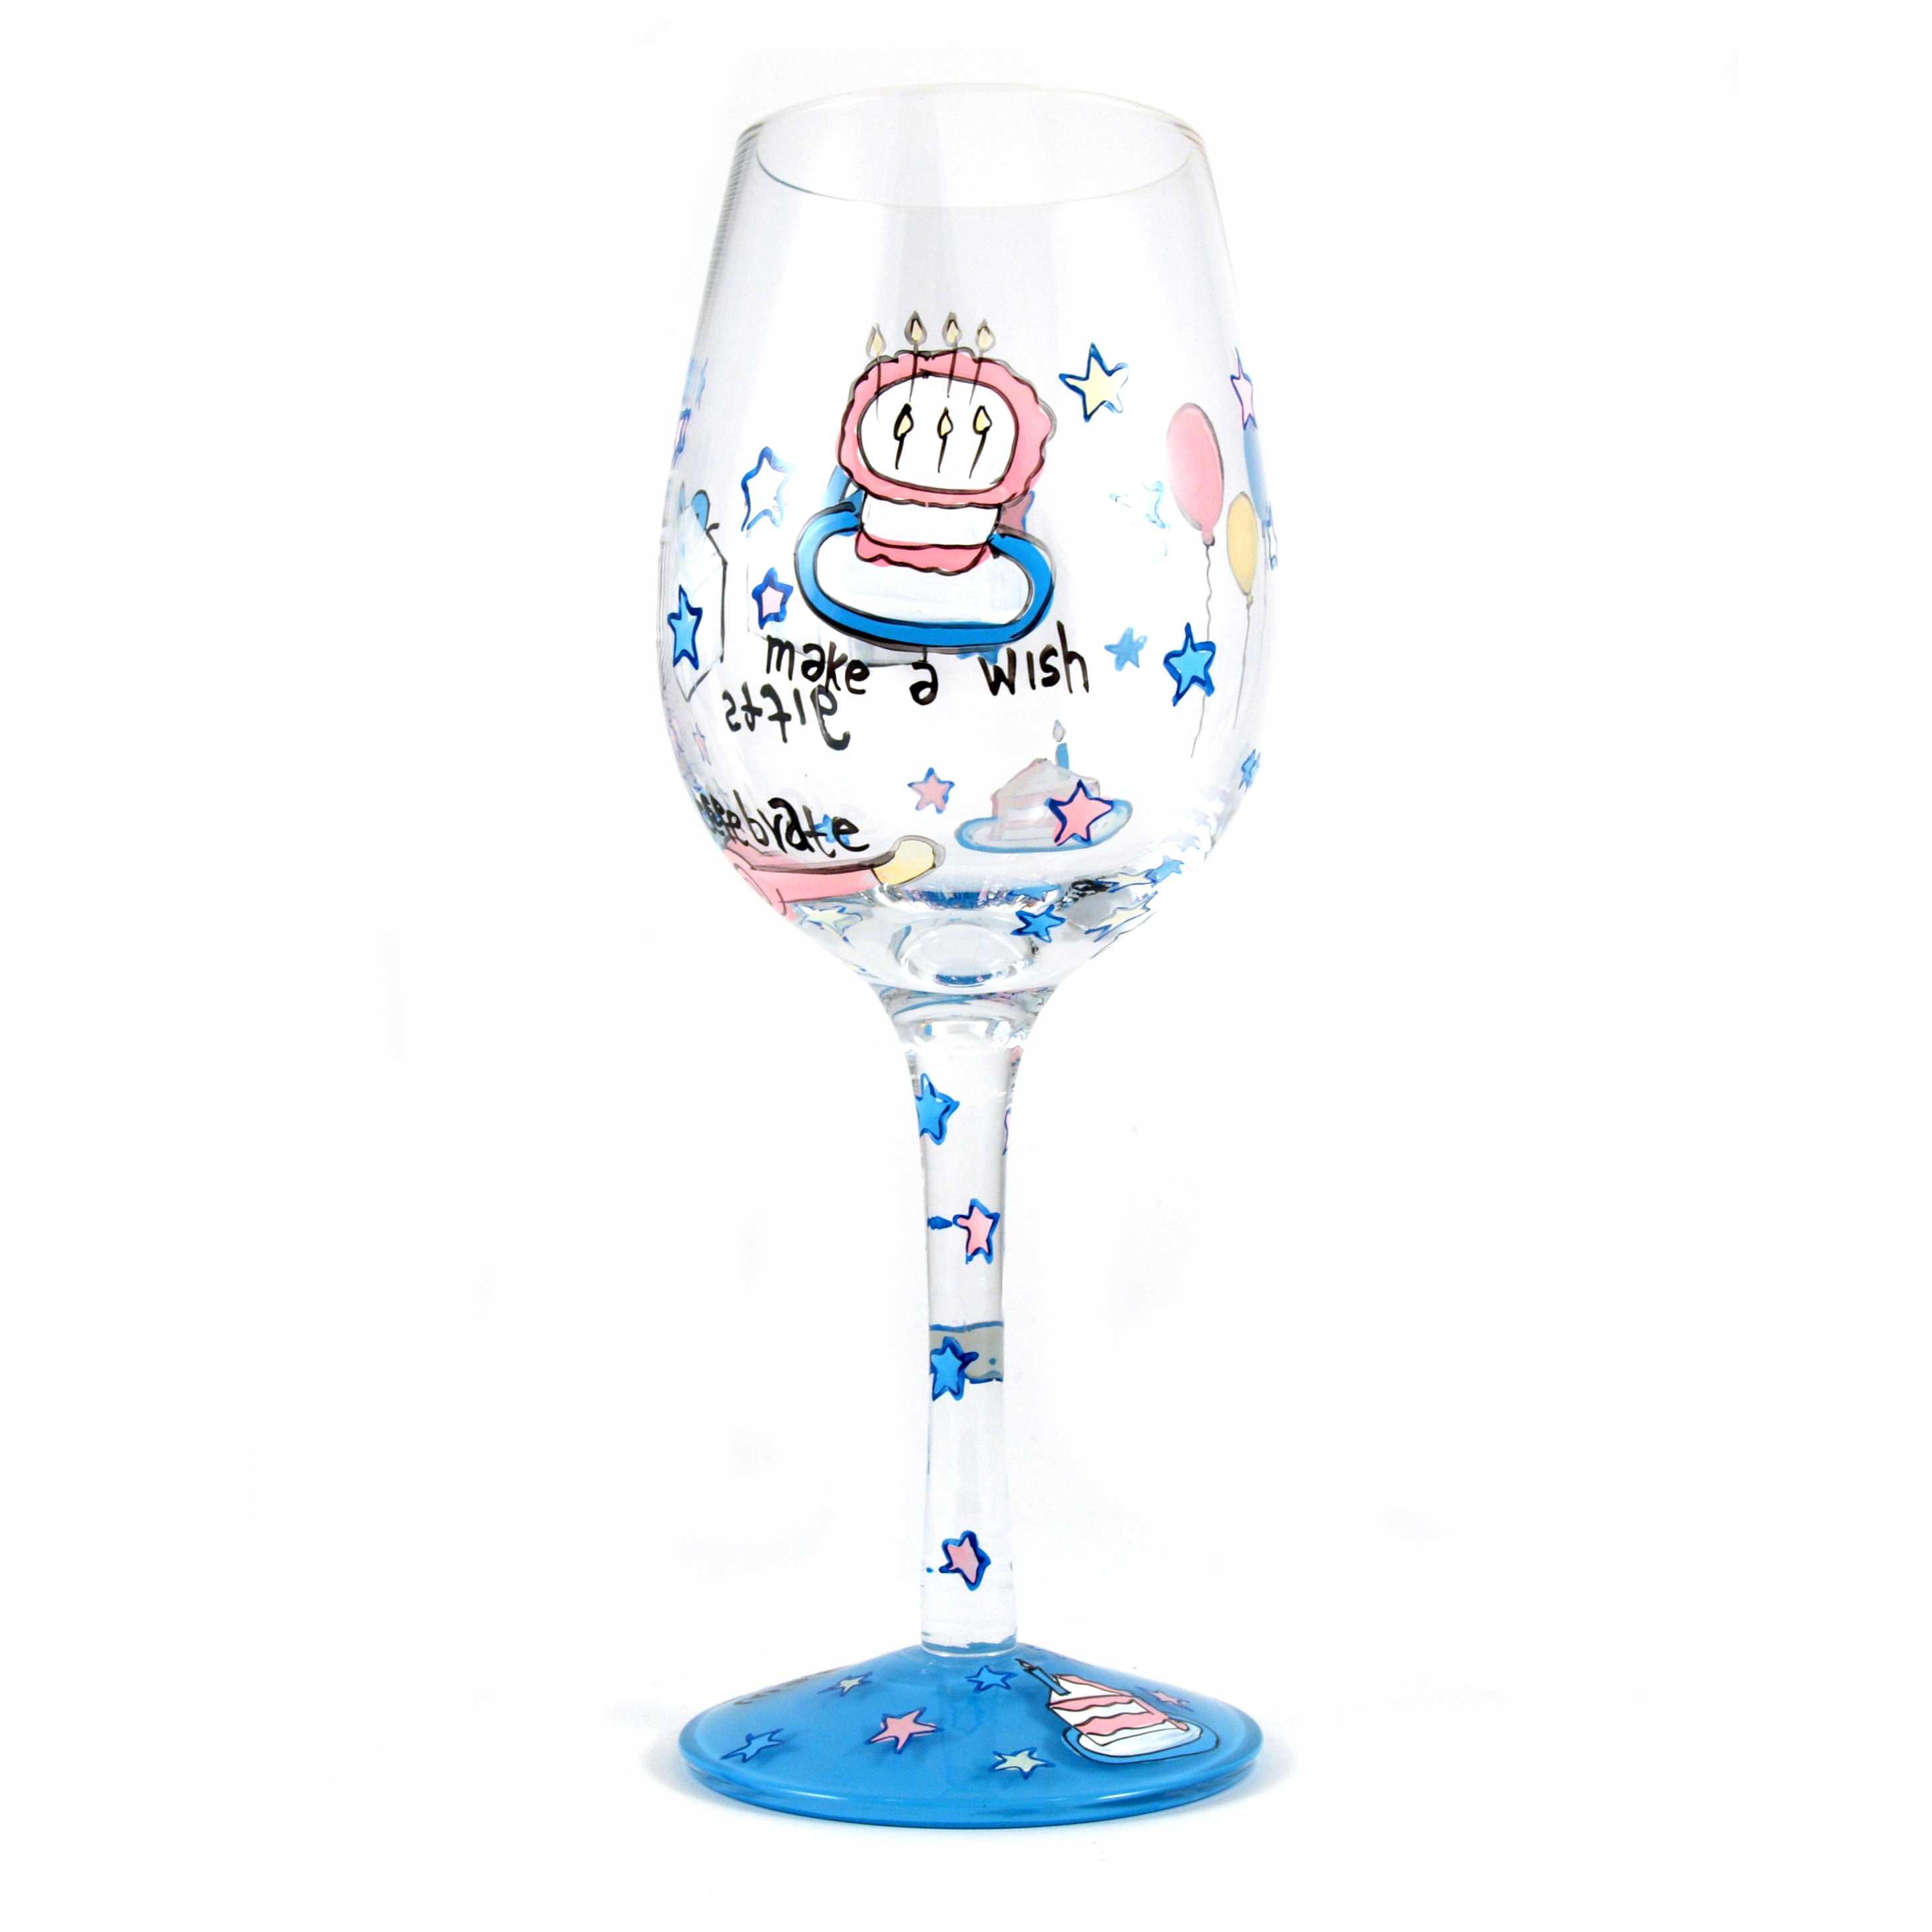 Hand Painted Make A Wish Goblet Glasses, Set of 2